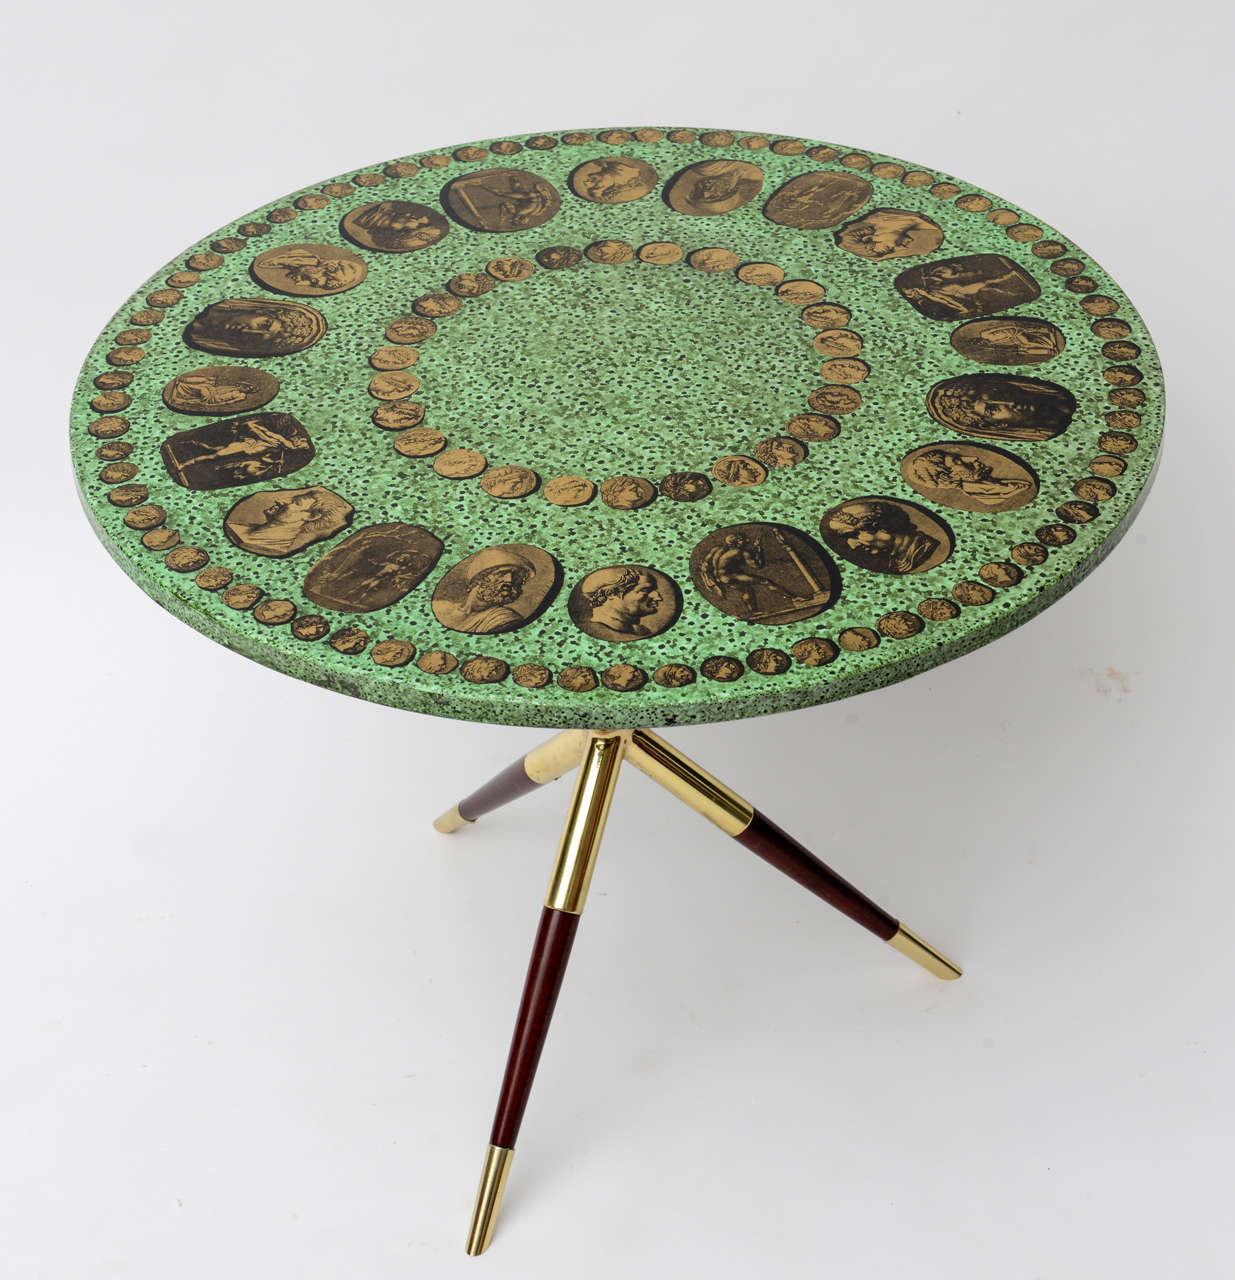 Captivating Piero Fornasetti Cammei Side Table 2